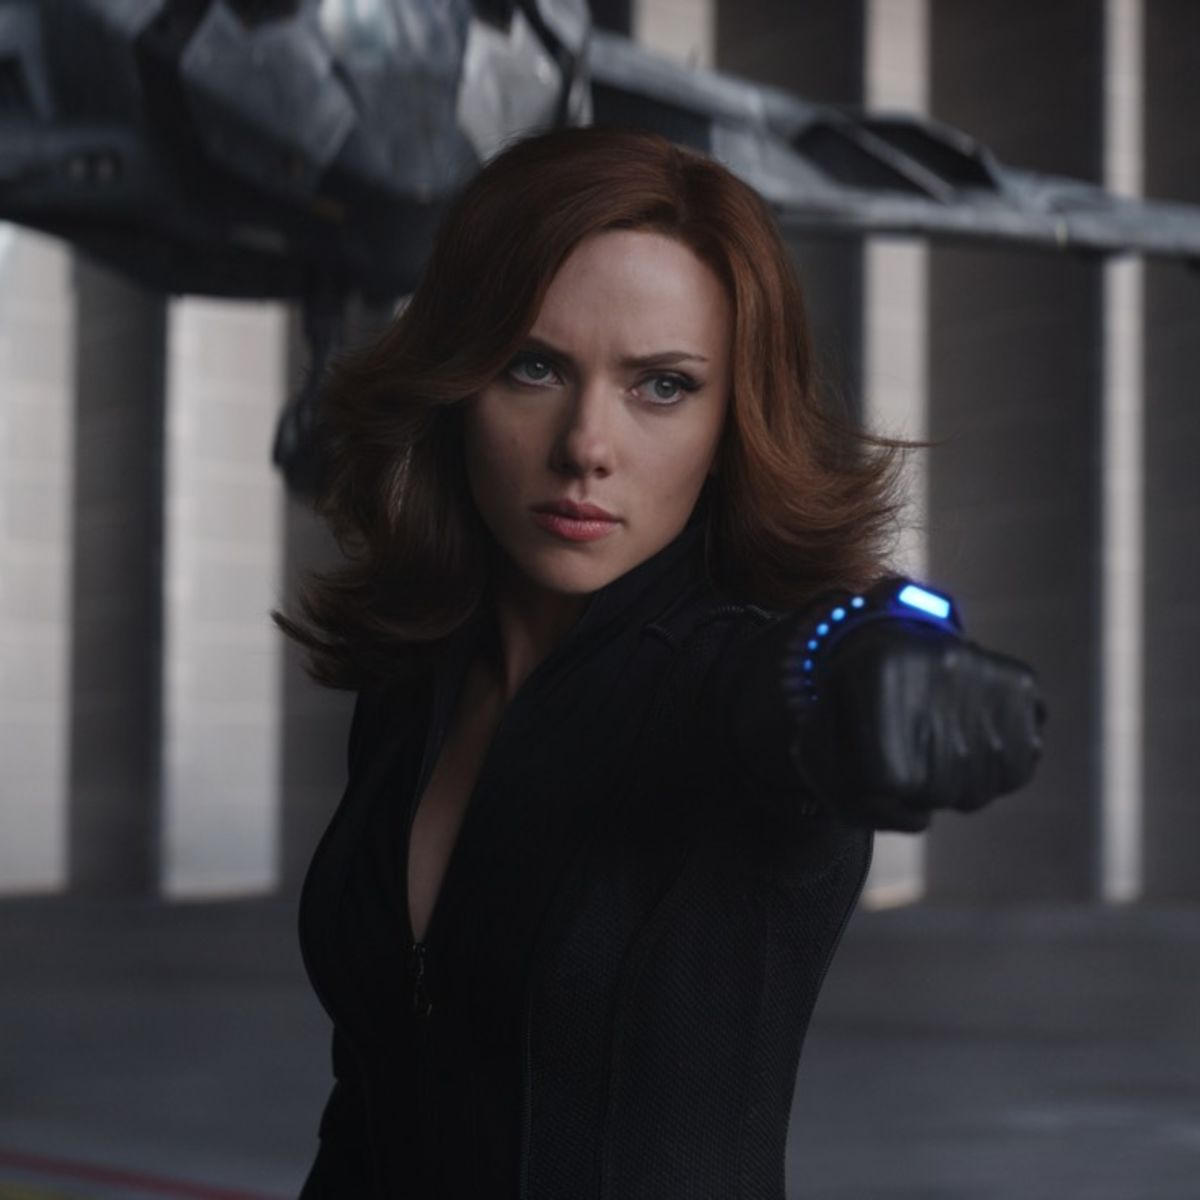 BlackWidow.jpg